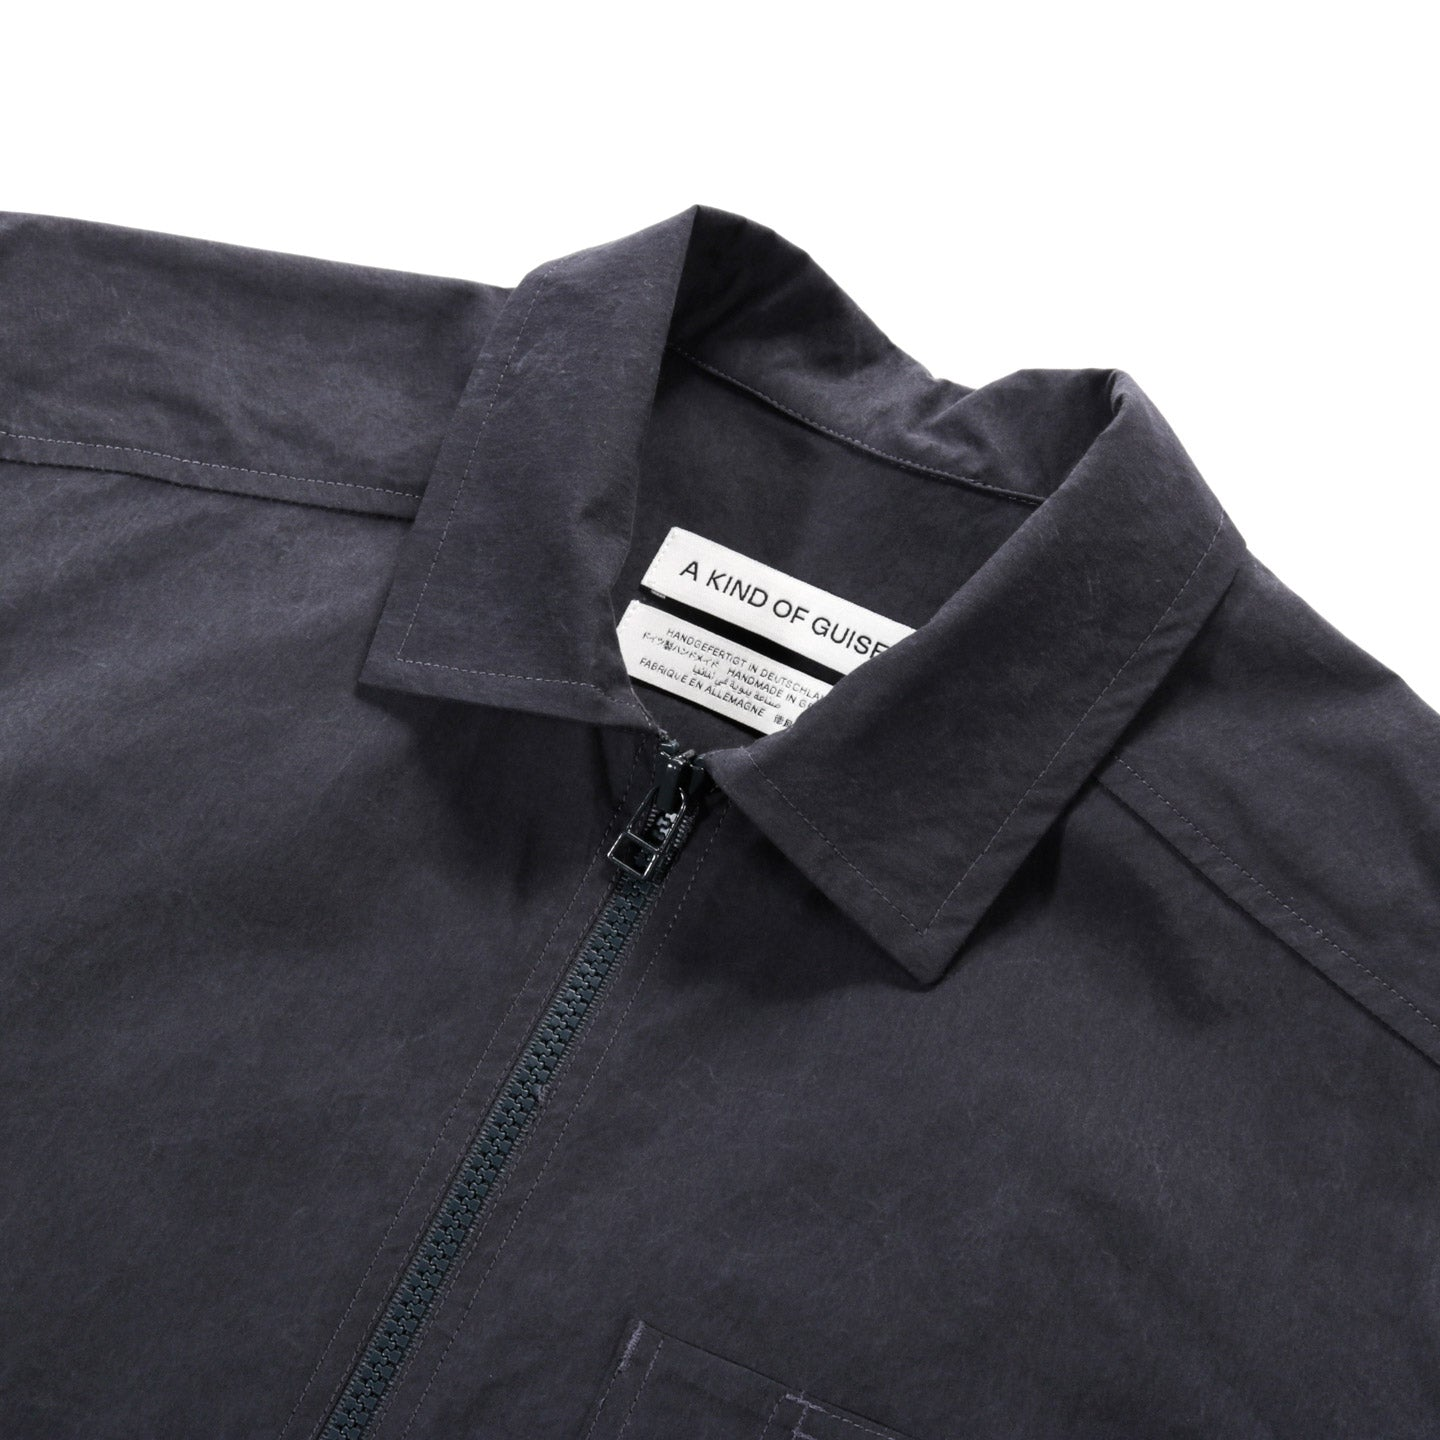 A KIND OF GUISE BELLEVILLE SHIRT WASHED NAVY